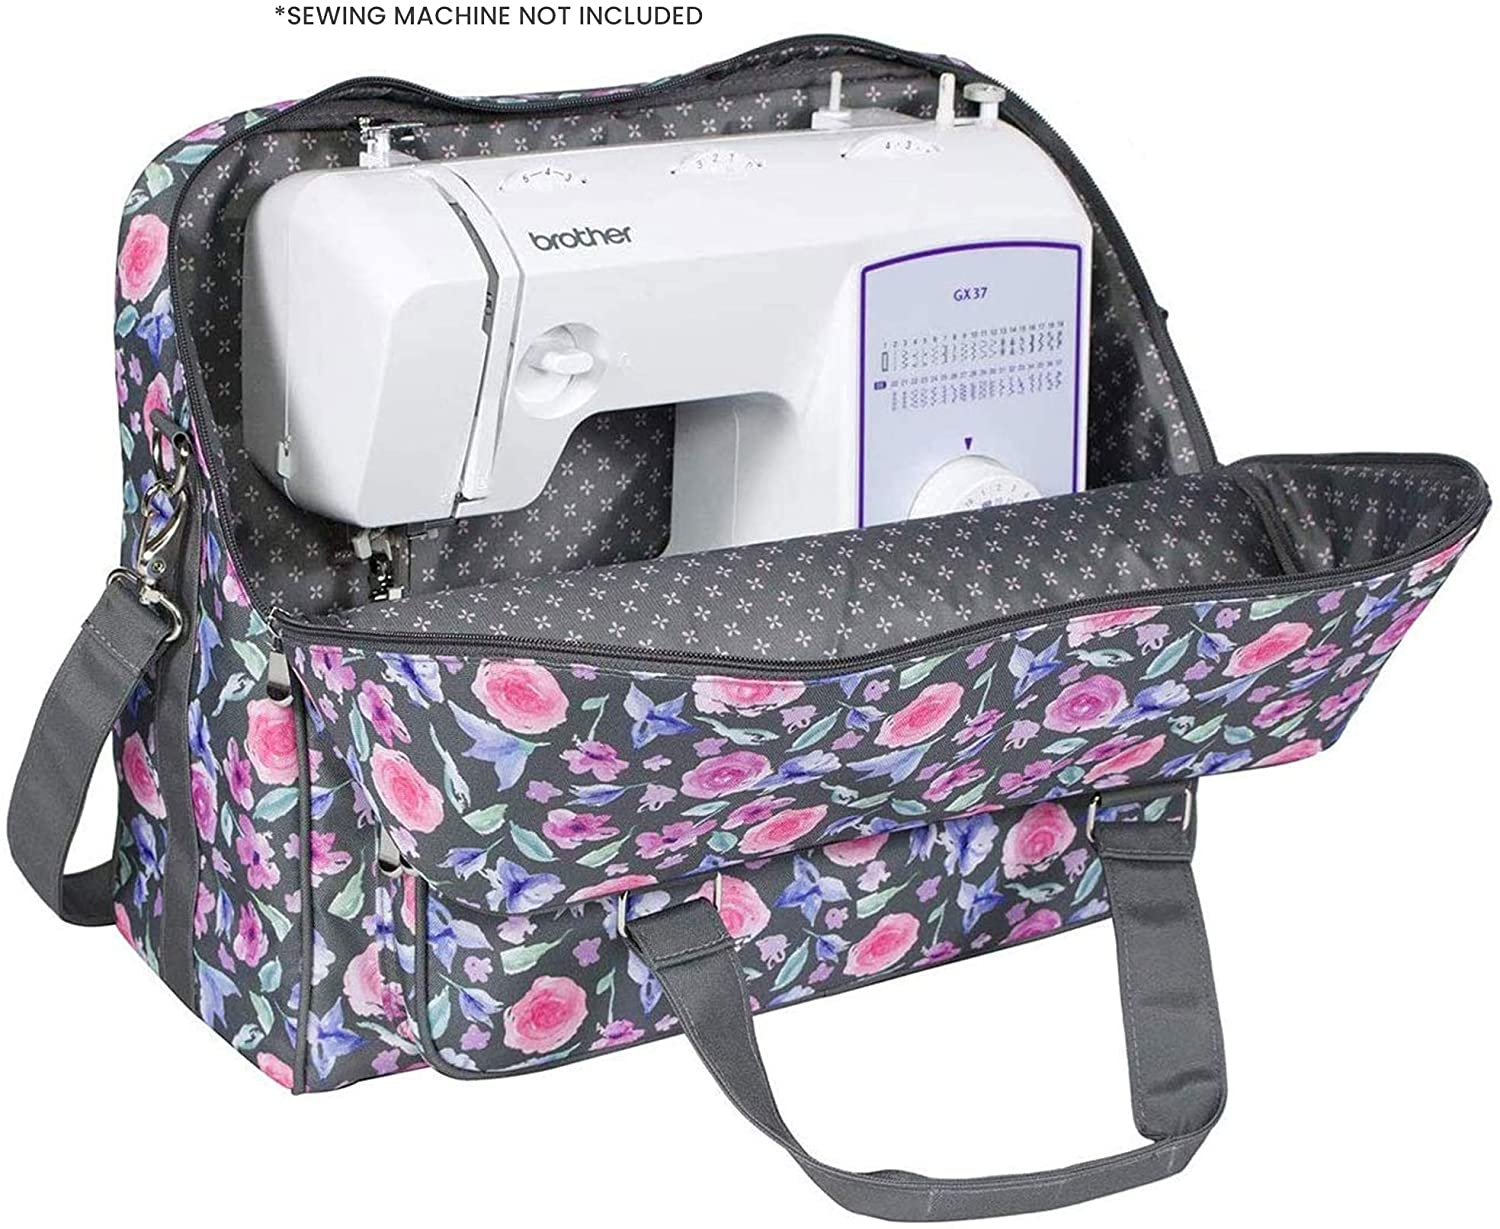 Everything Mary Deluxe Universal Sewing Machine Case, Floral - Portable Cover Tote Bag for Brother, Singer, Bernina & Most Machines - Carrying Travel Storage Carrier Supply Organizer for Accessories